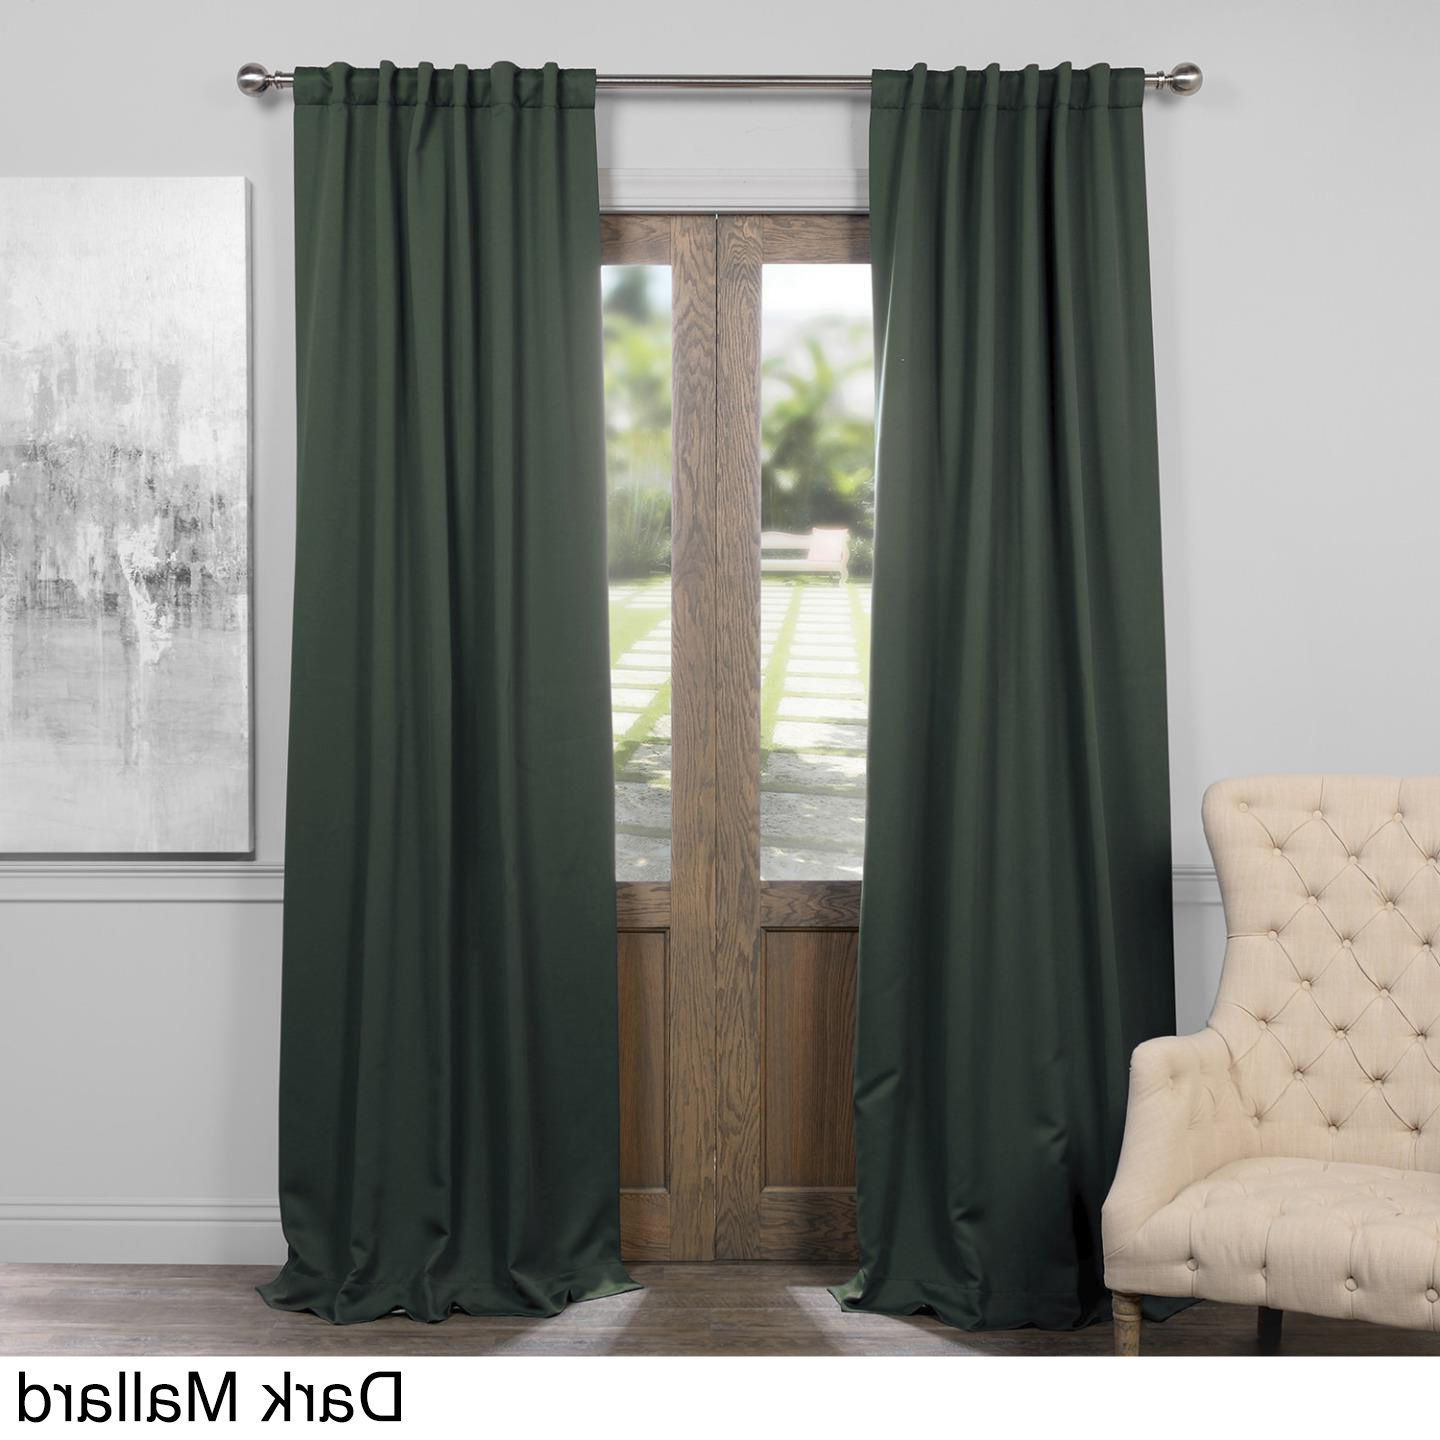 Exclusive Fabrics Thermal Insulated Solid Blackout 96 Inch Pertaining To Fashionable Solid Insulated Thermal Blackout Curtain Panel Pairs (View 3 of 20)